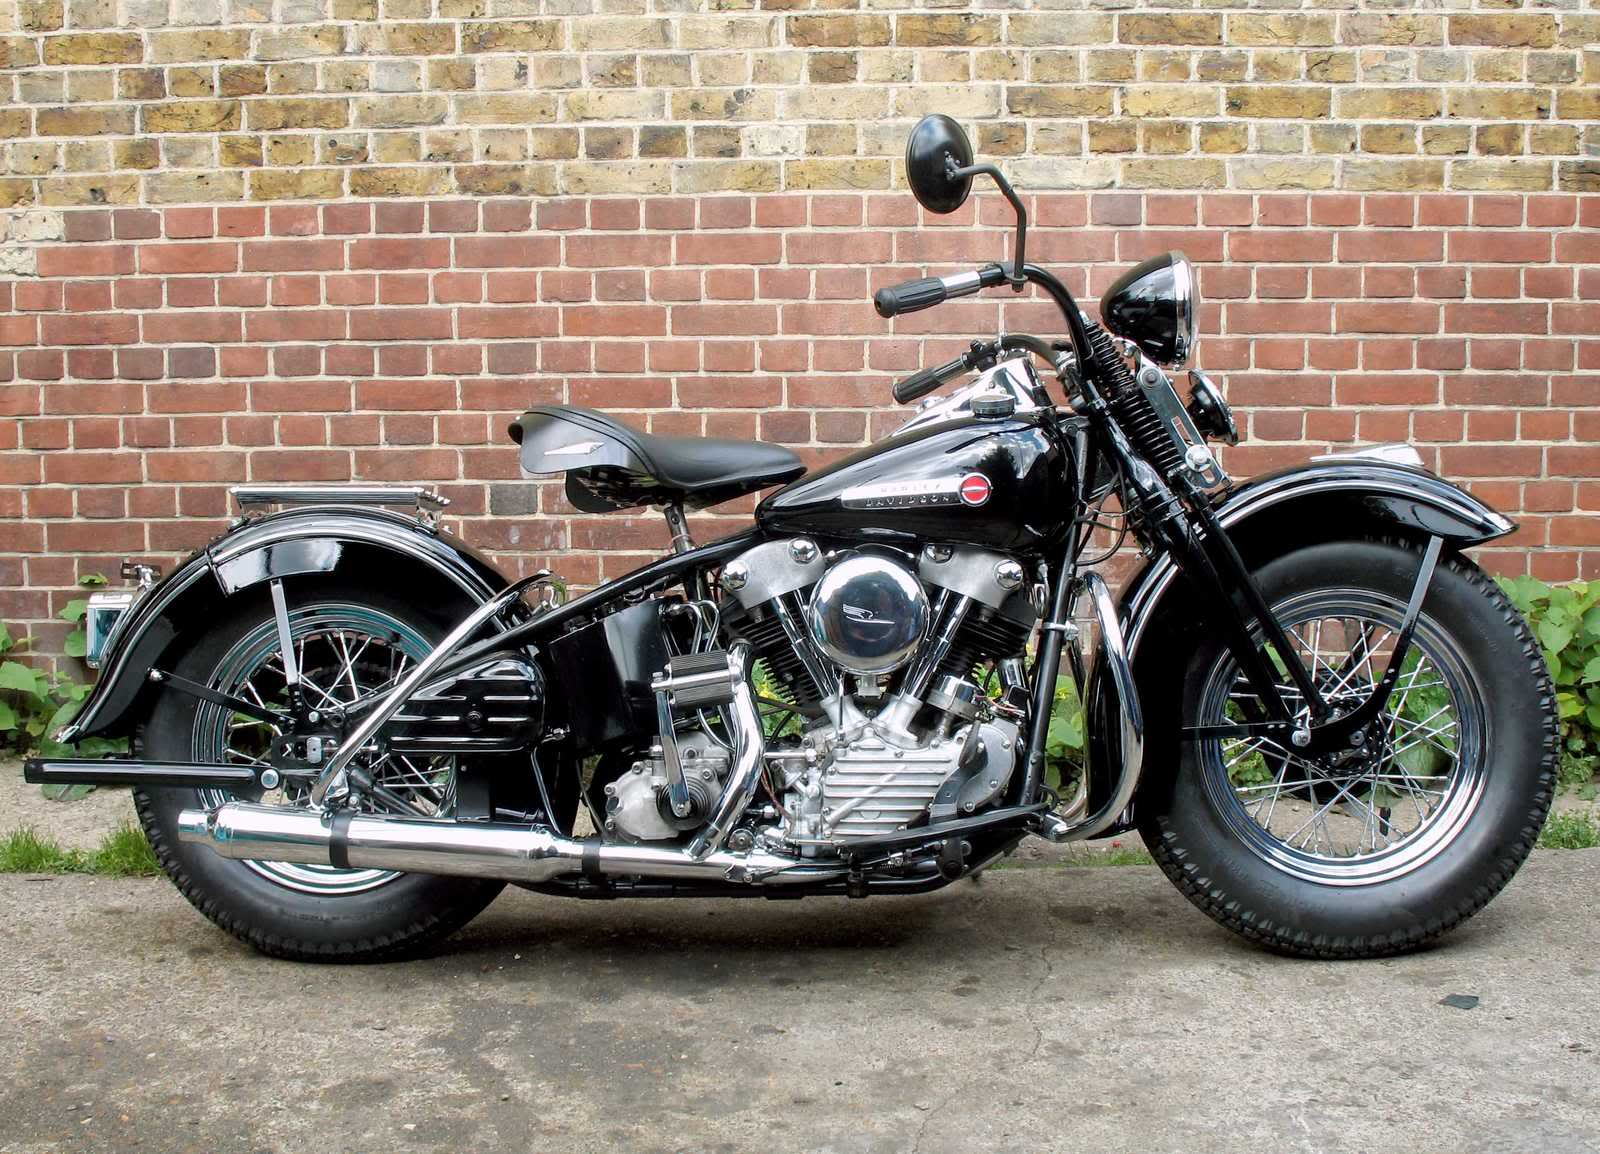 Harley Davidson: Harley-davidson Knucklehead Photo And Video Review. Comments